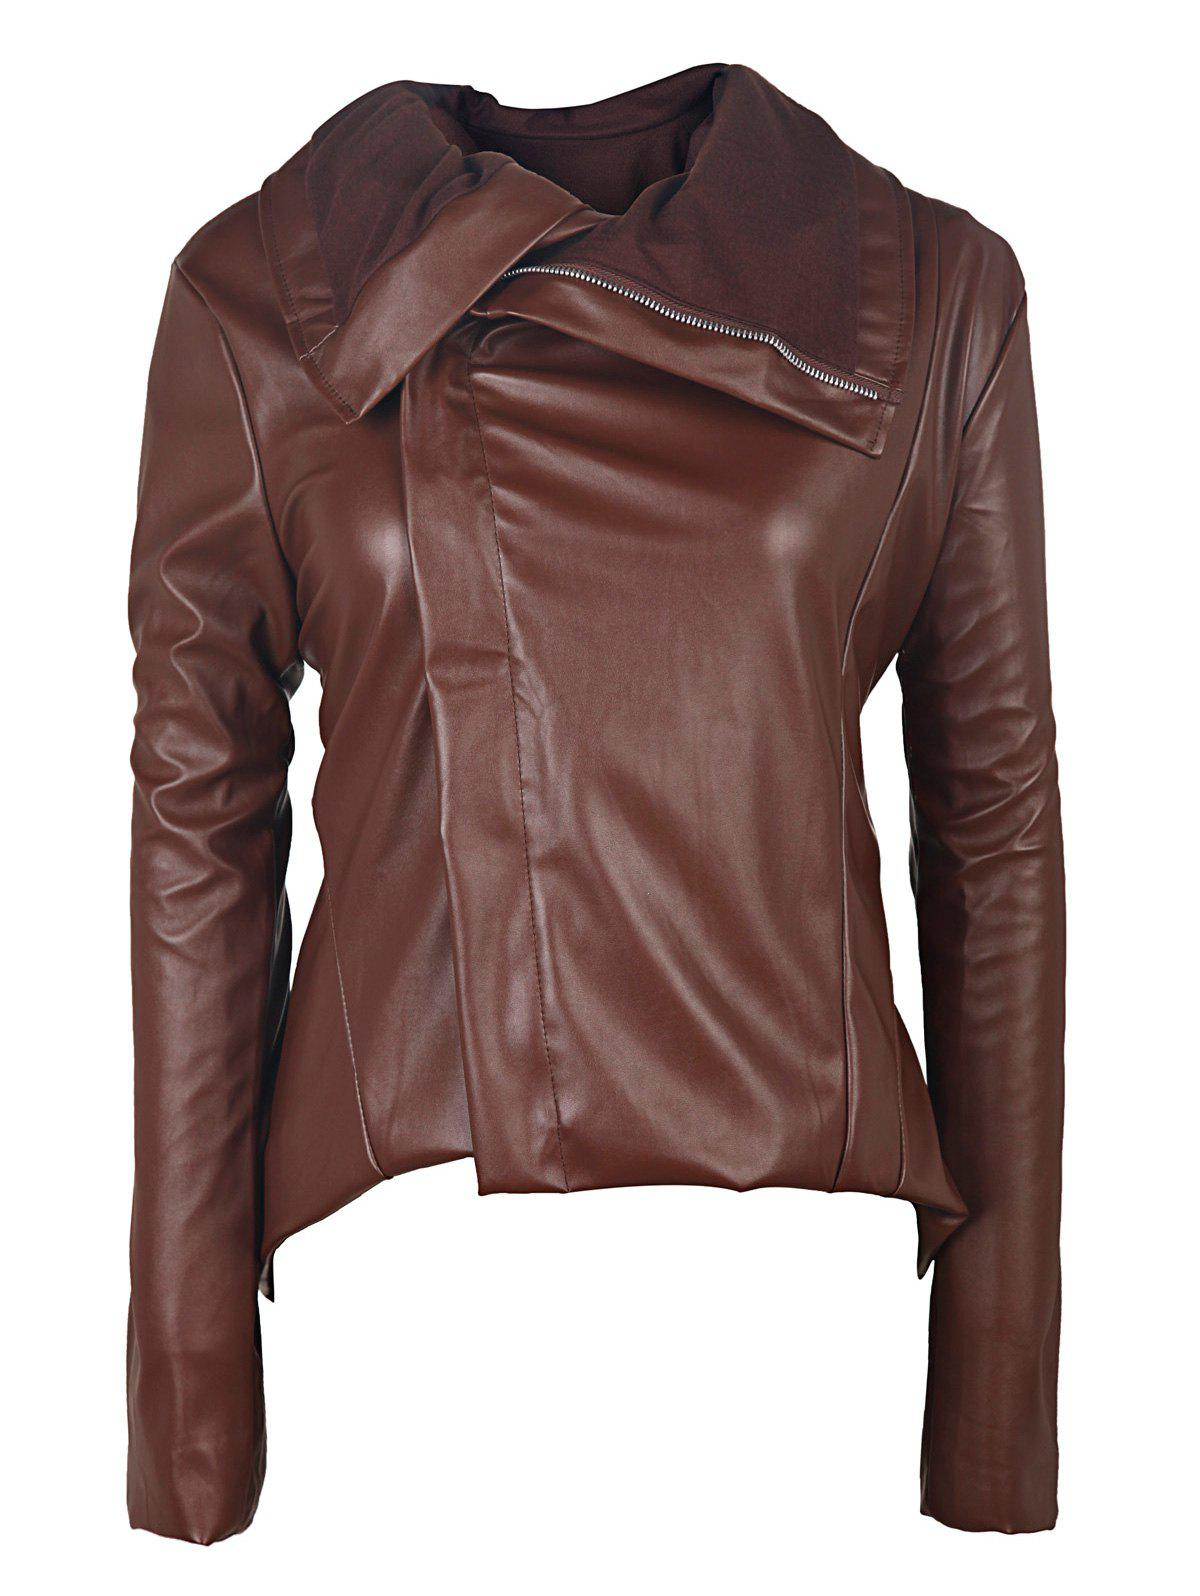 Best Long Sleeve Asymmetrical Faux Leather Jacket with Fur Collar